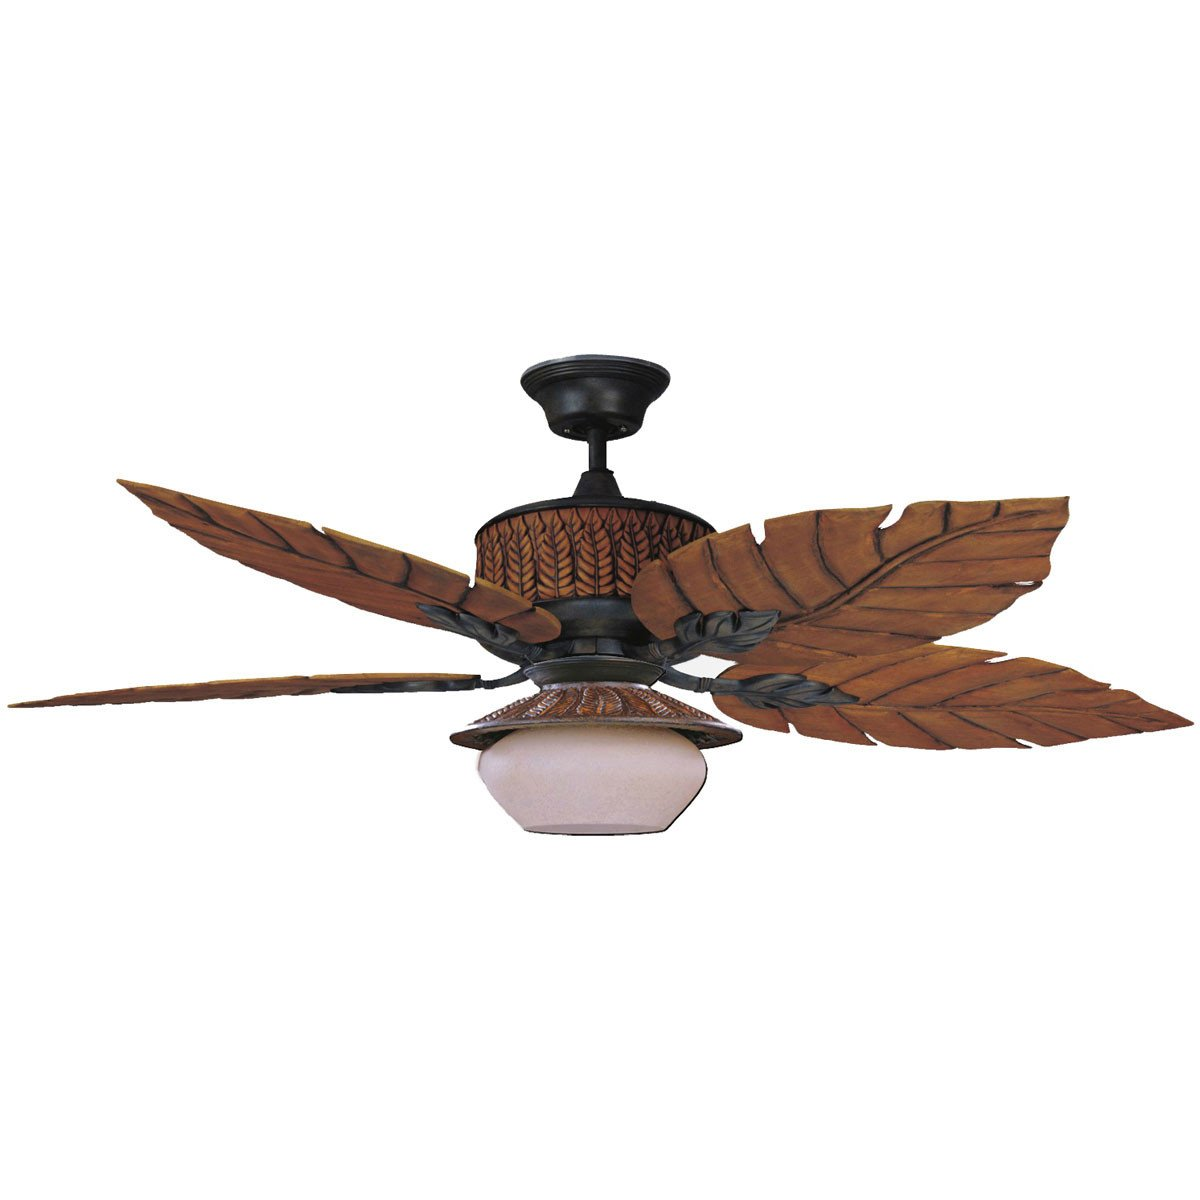 "Concord Fans 52"" Fern Leaf Breeze Rustic Iron Outdoor Ceiling Fan with Light"